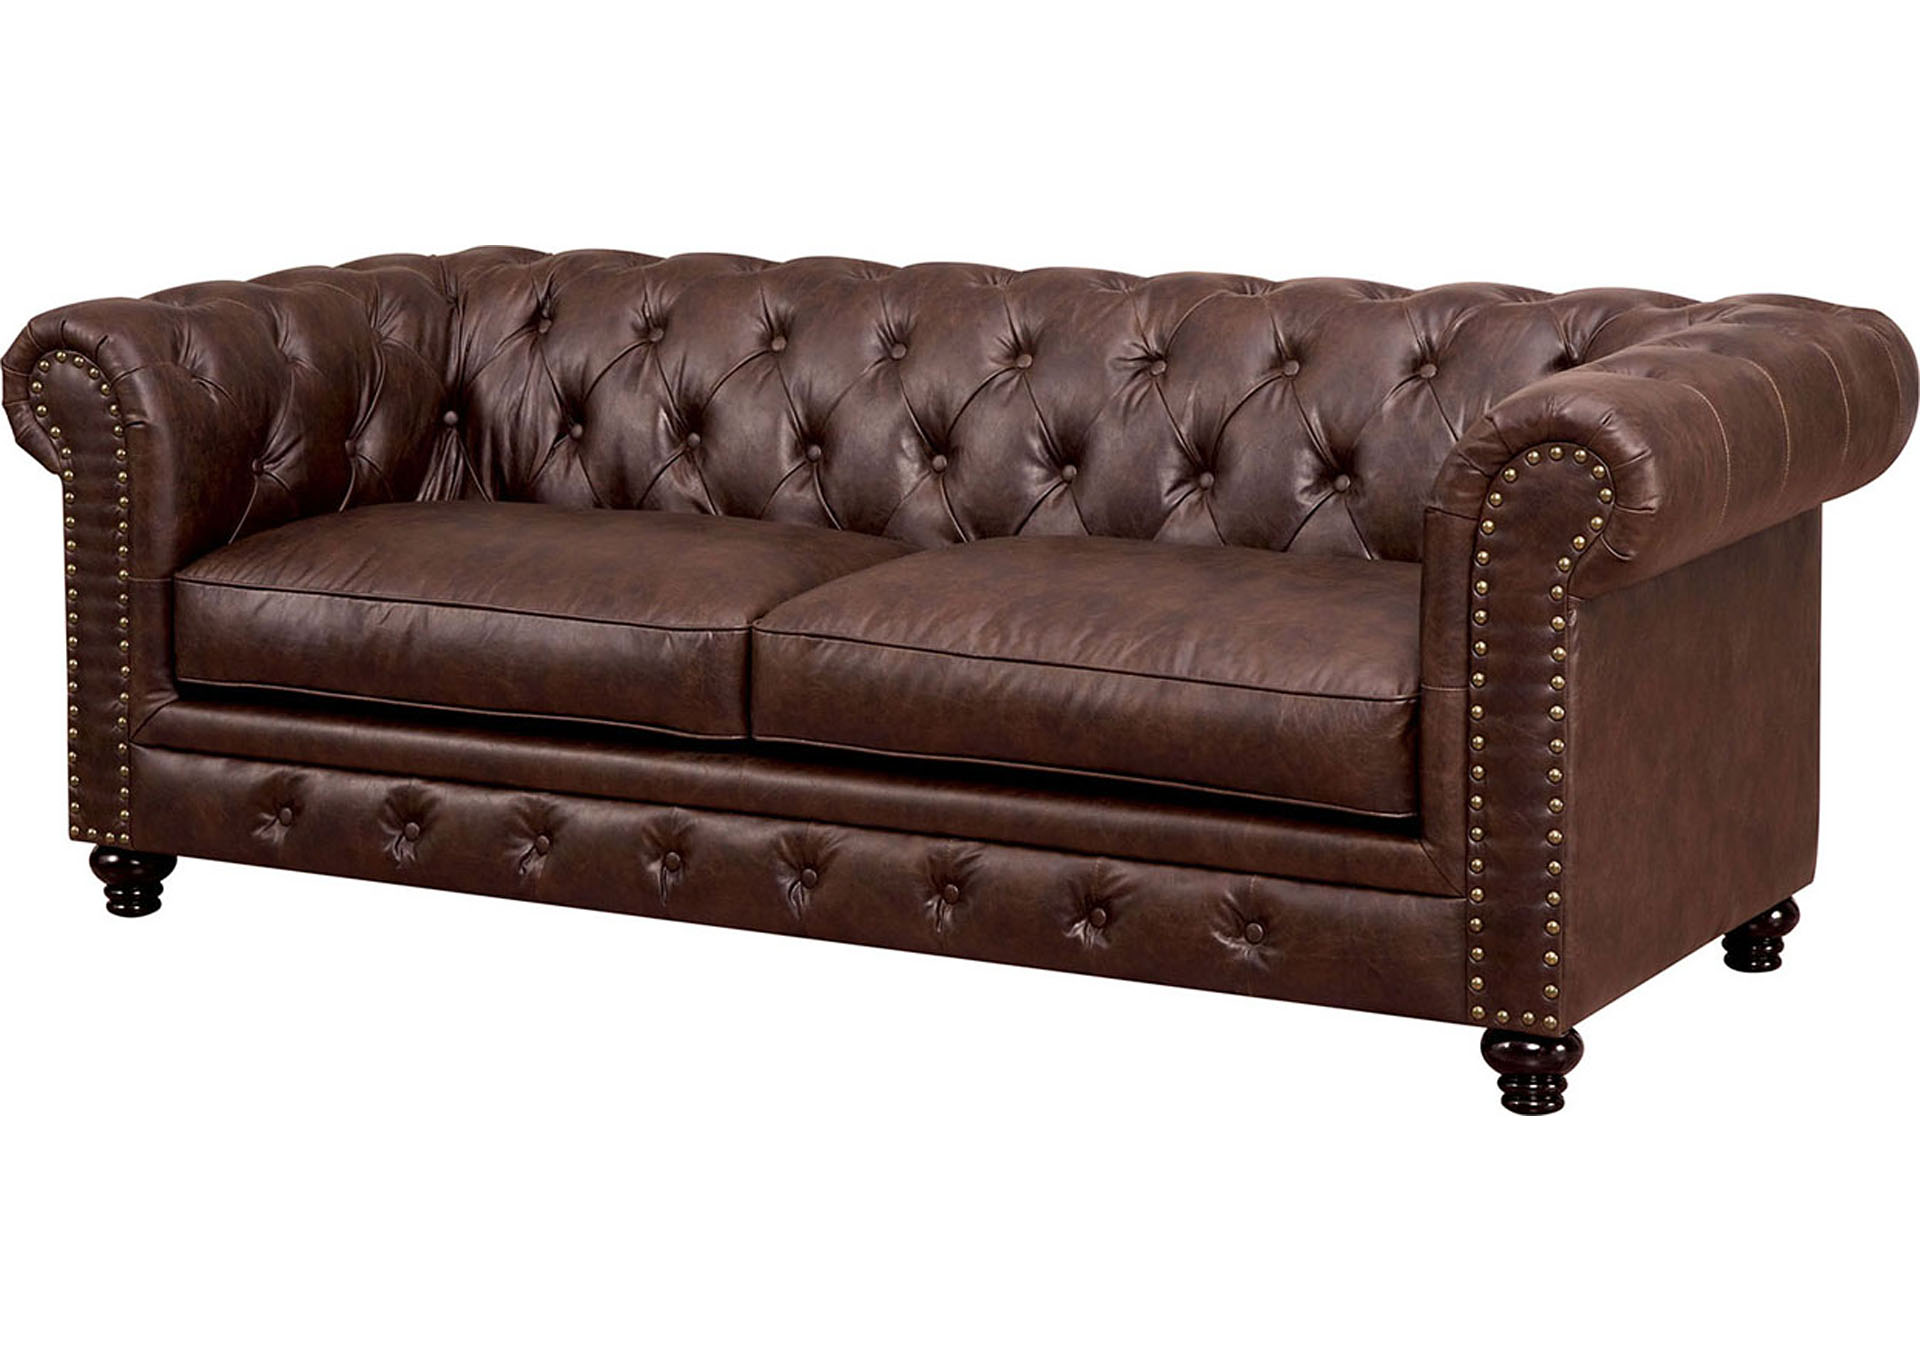 Furniture ville bronx ny stanford brown leatherette sofa for Furniture ville